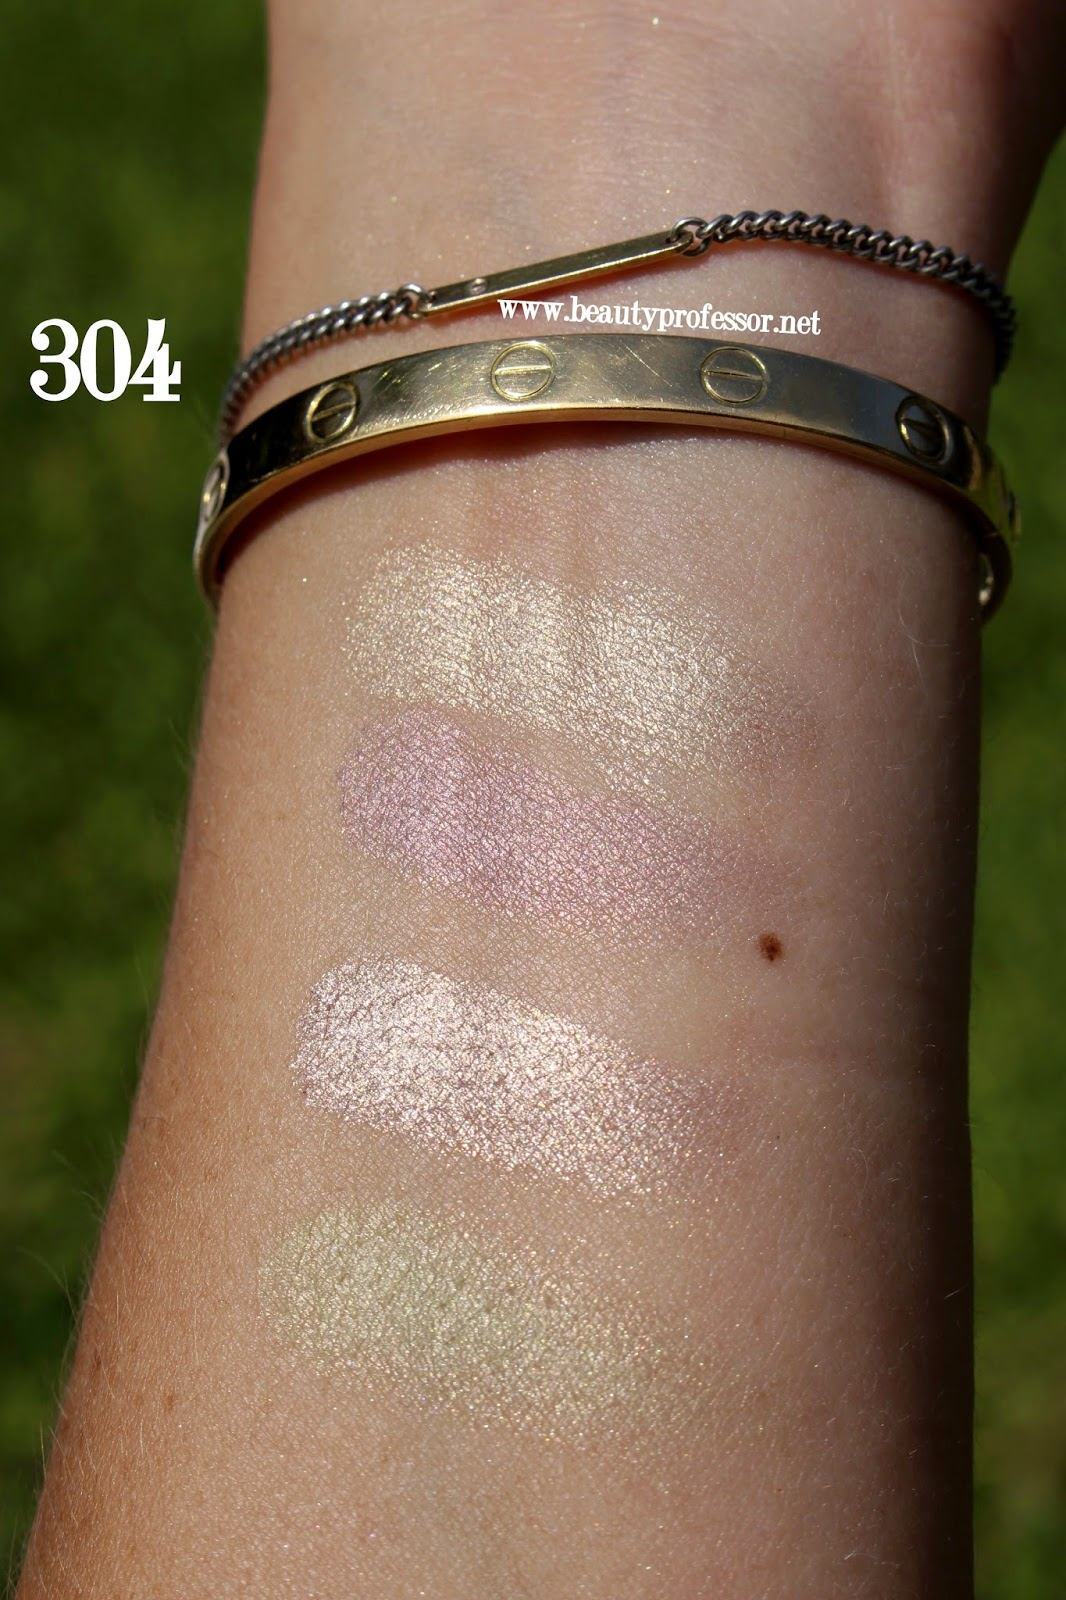 Cle de peau eye color quad 304 champagne supernova swatches